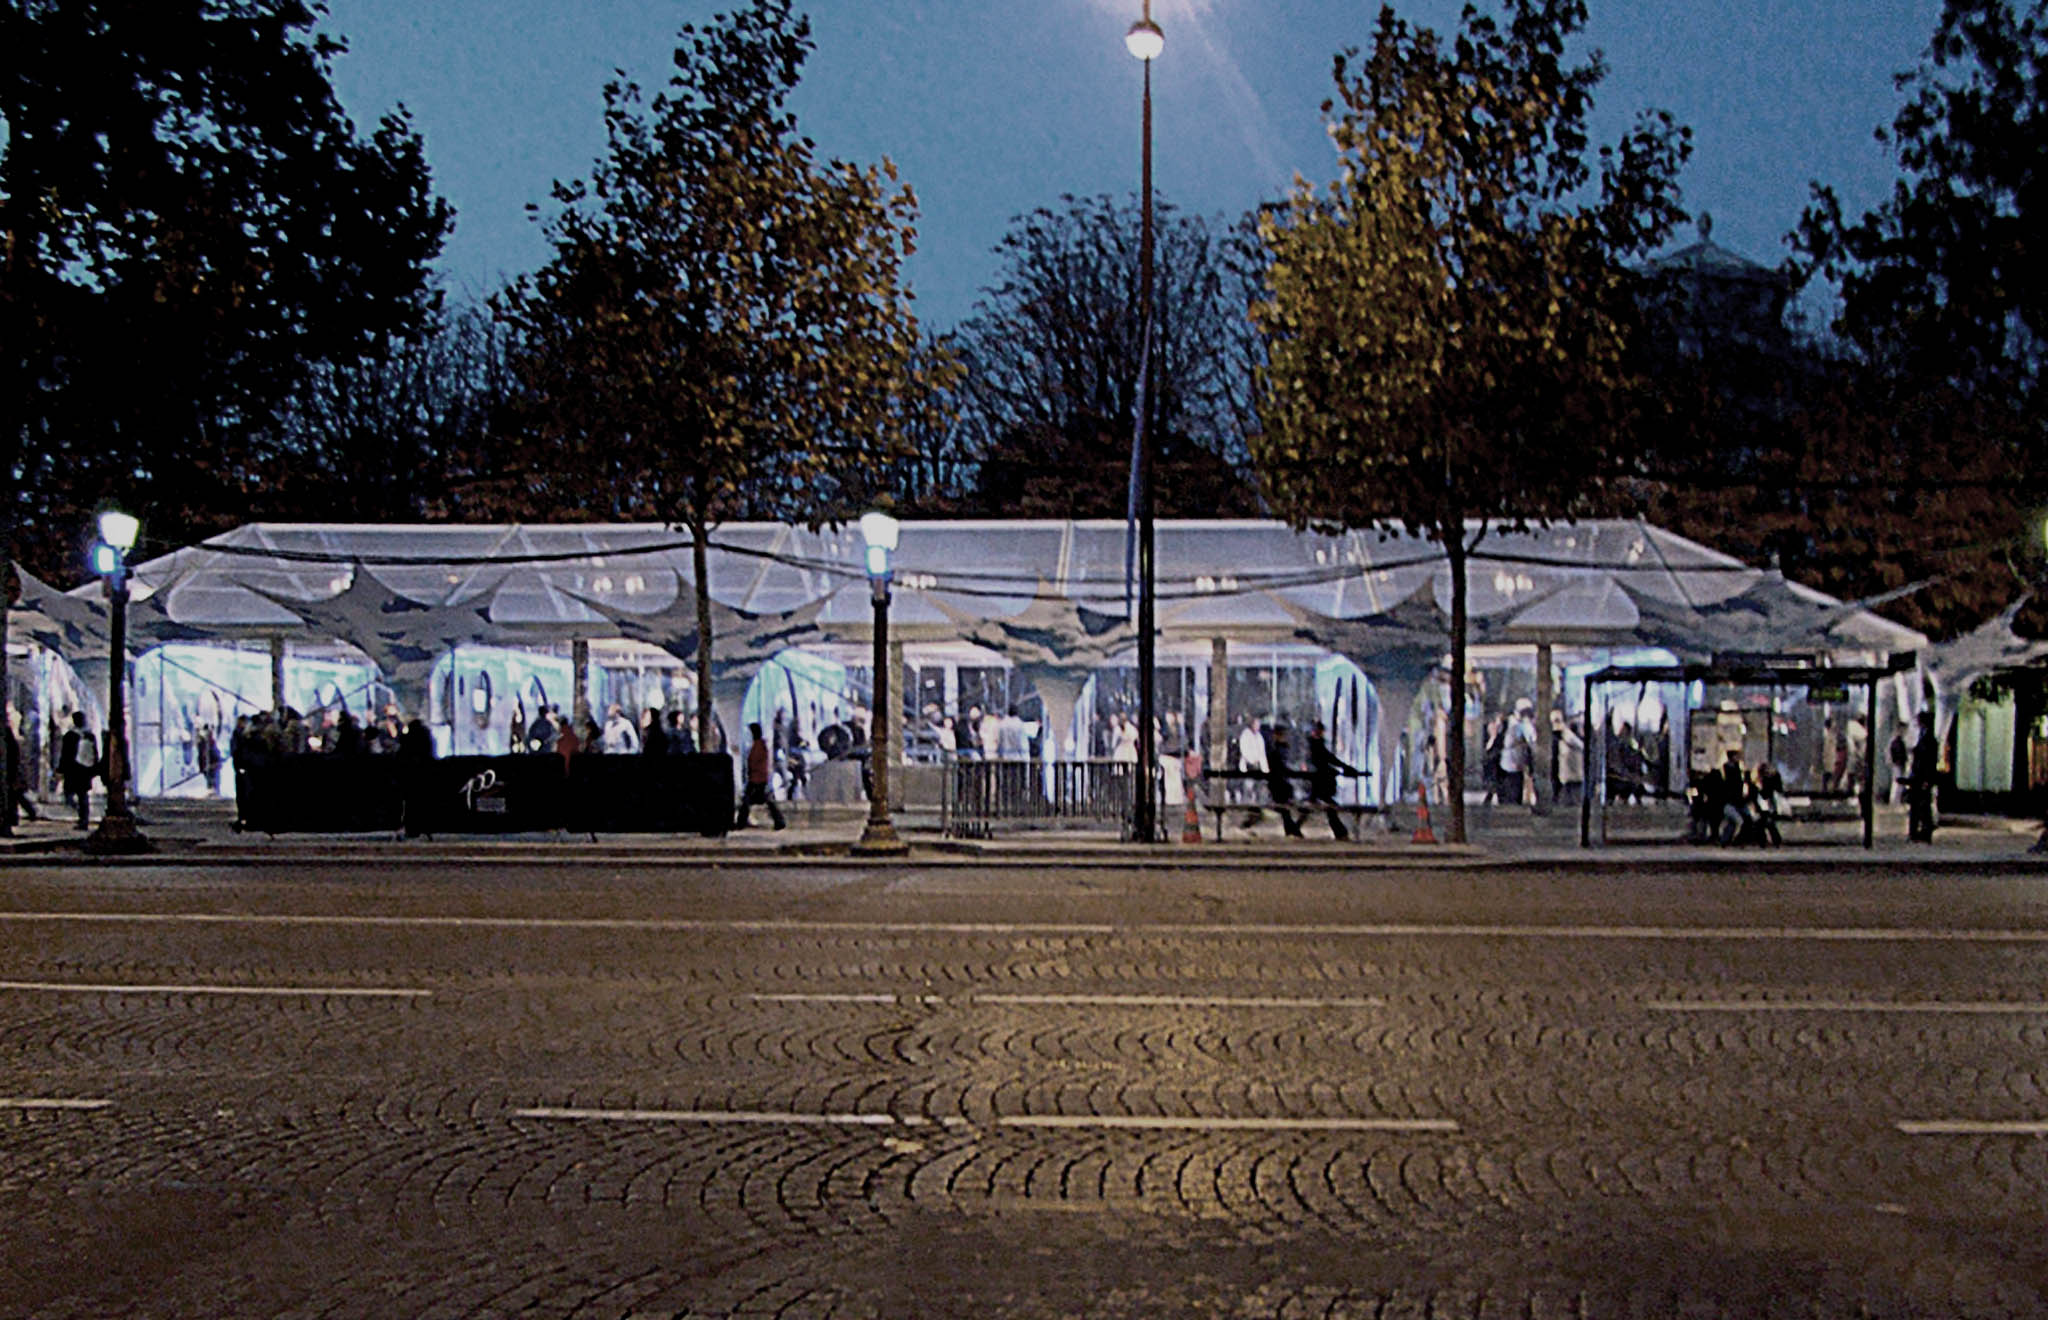 maskarade-scenographie-architecture-pavillon-itinerant-exposition-champs-elysees-nuit